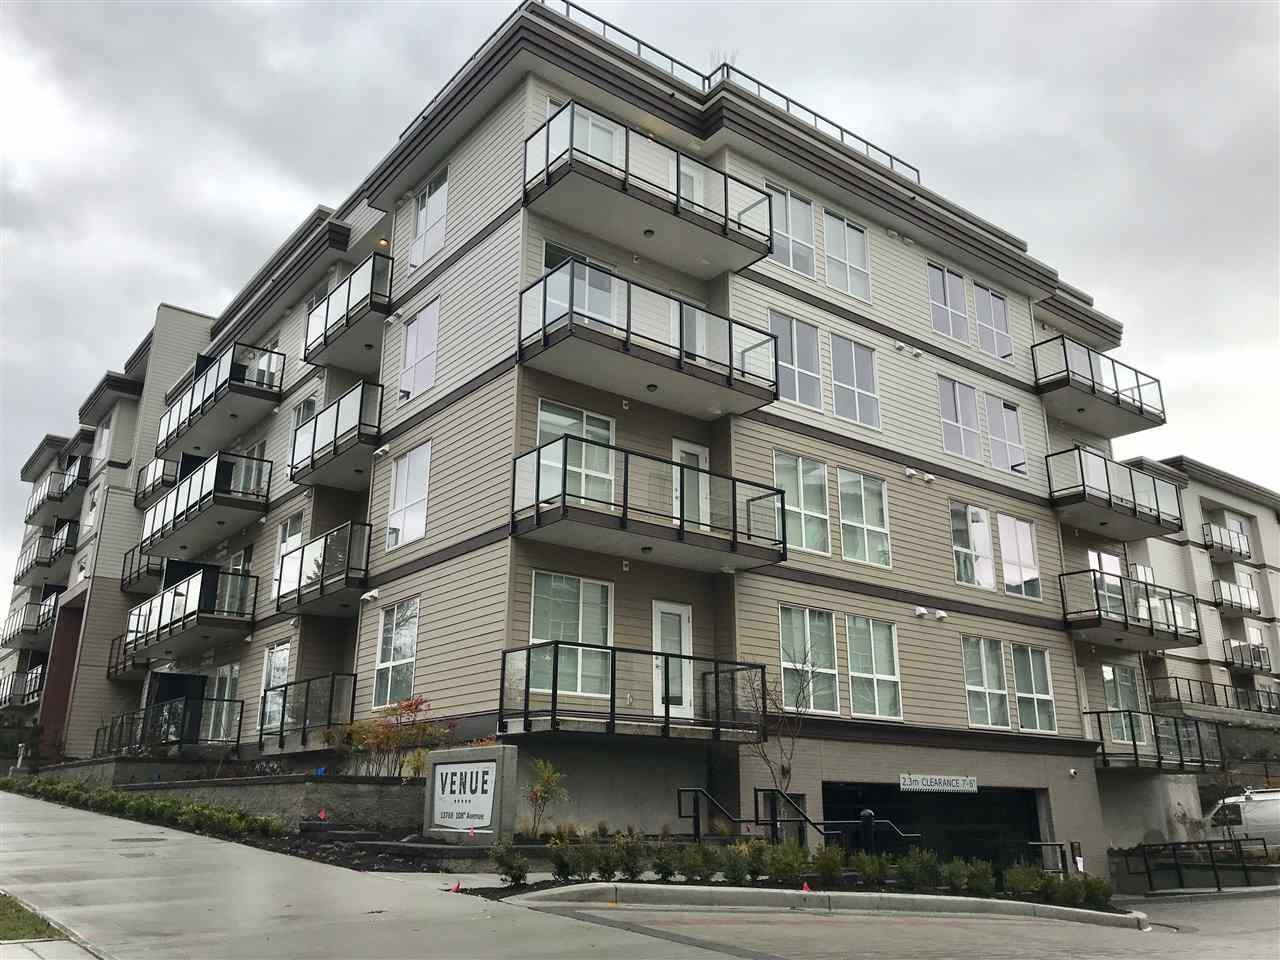 "Main Photo: 226 13768 108 Avenue in Surrey: Whalley Condo for sale in ""VENUE"" (North Surrey)  : MLS®# R2329870"